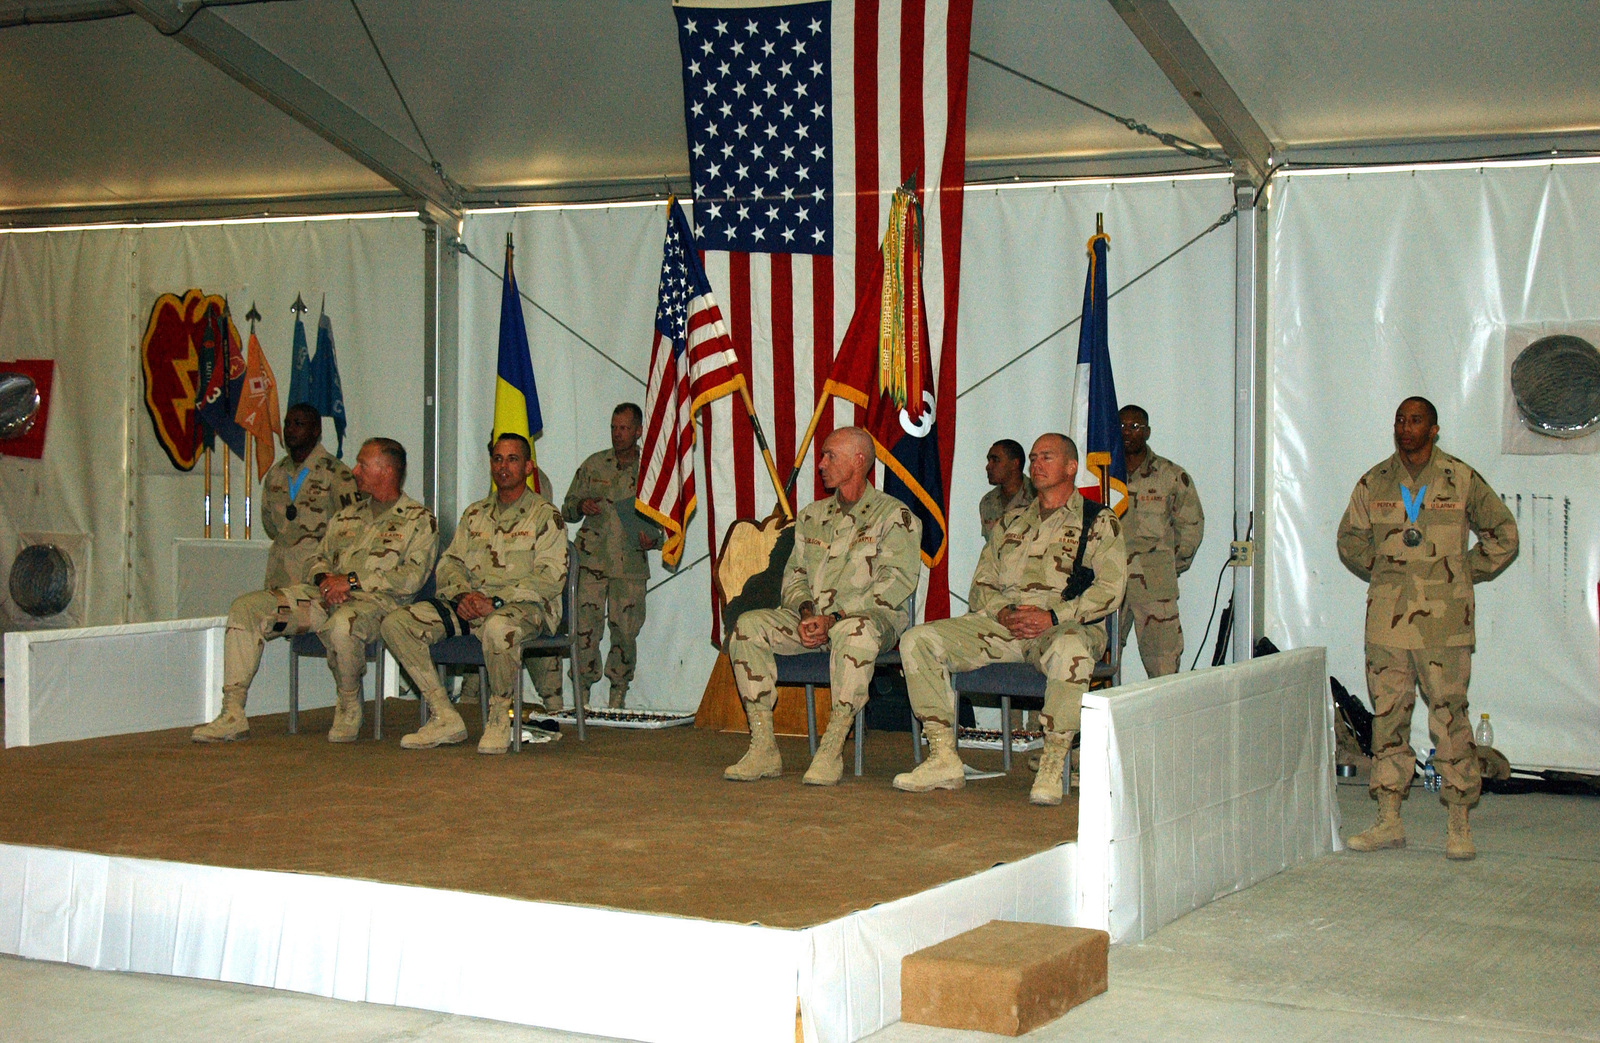 US Army (USA) Major General (MGEN) Eric Olson (seated second from right), Commander, Combined Task Force, listens with other members of the official party during an Award Ceremony for Soldier serving with the 25th Infantry Division Tropic Lightning, at Kandahar Airfield, Afghanistan, during Operation ENDURING FREEDOM. Soldiers of the 25th ID were presented with, Global War on Terrorism Medals, Combat Infantryman's Badge, Combat Medic's Badge and Combat Patches, during the Ceremony